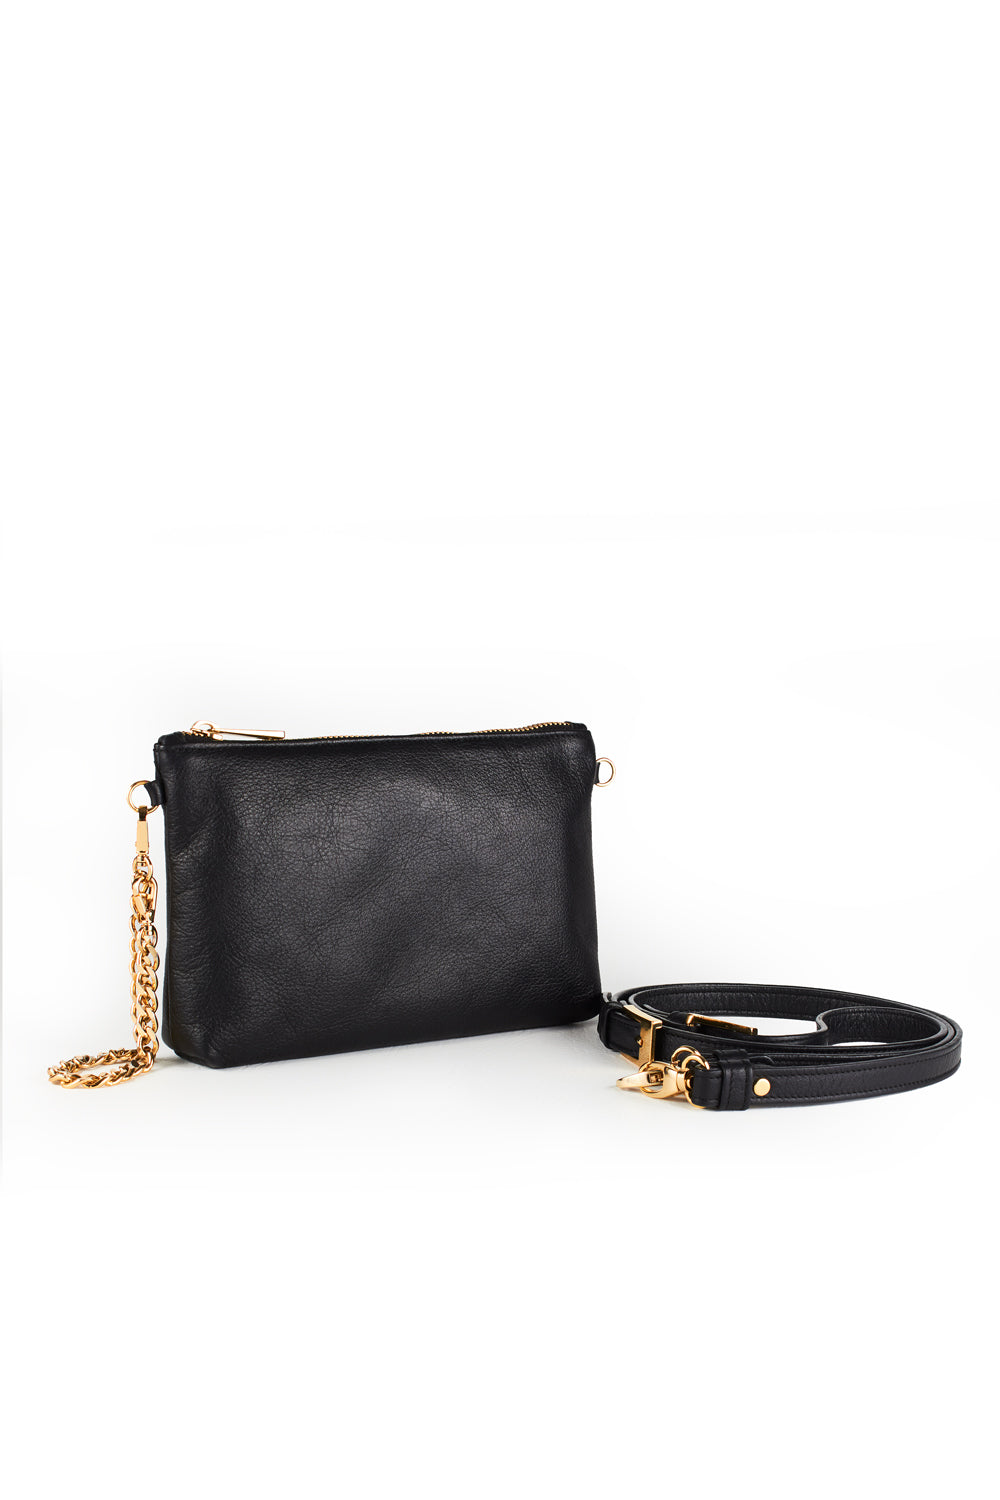 Mel Boteri | Black Leather 'Kat' Pouch | Side With Strap View